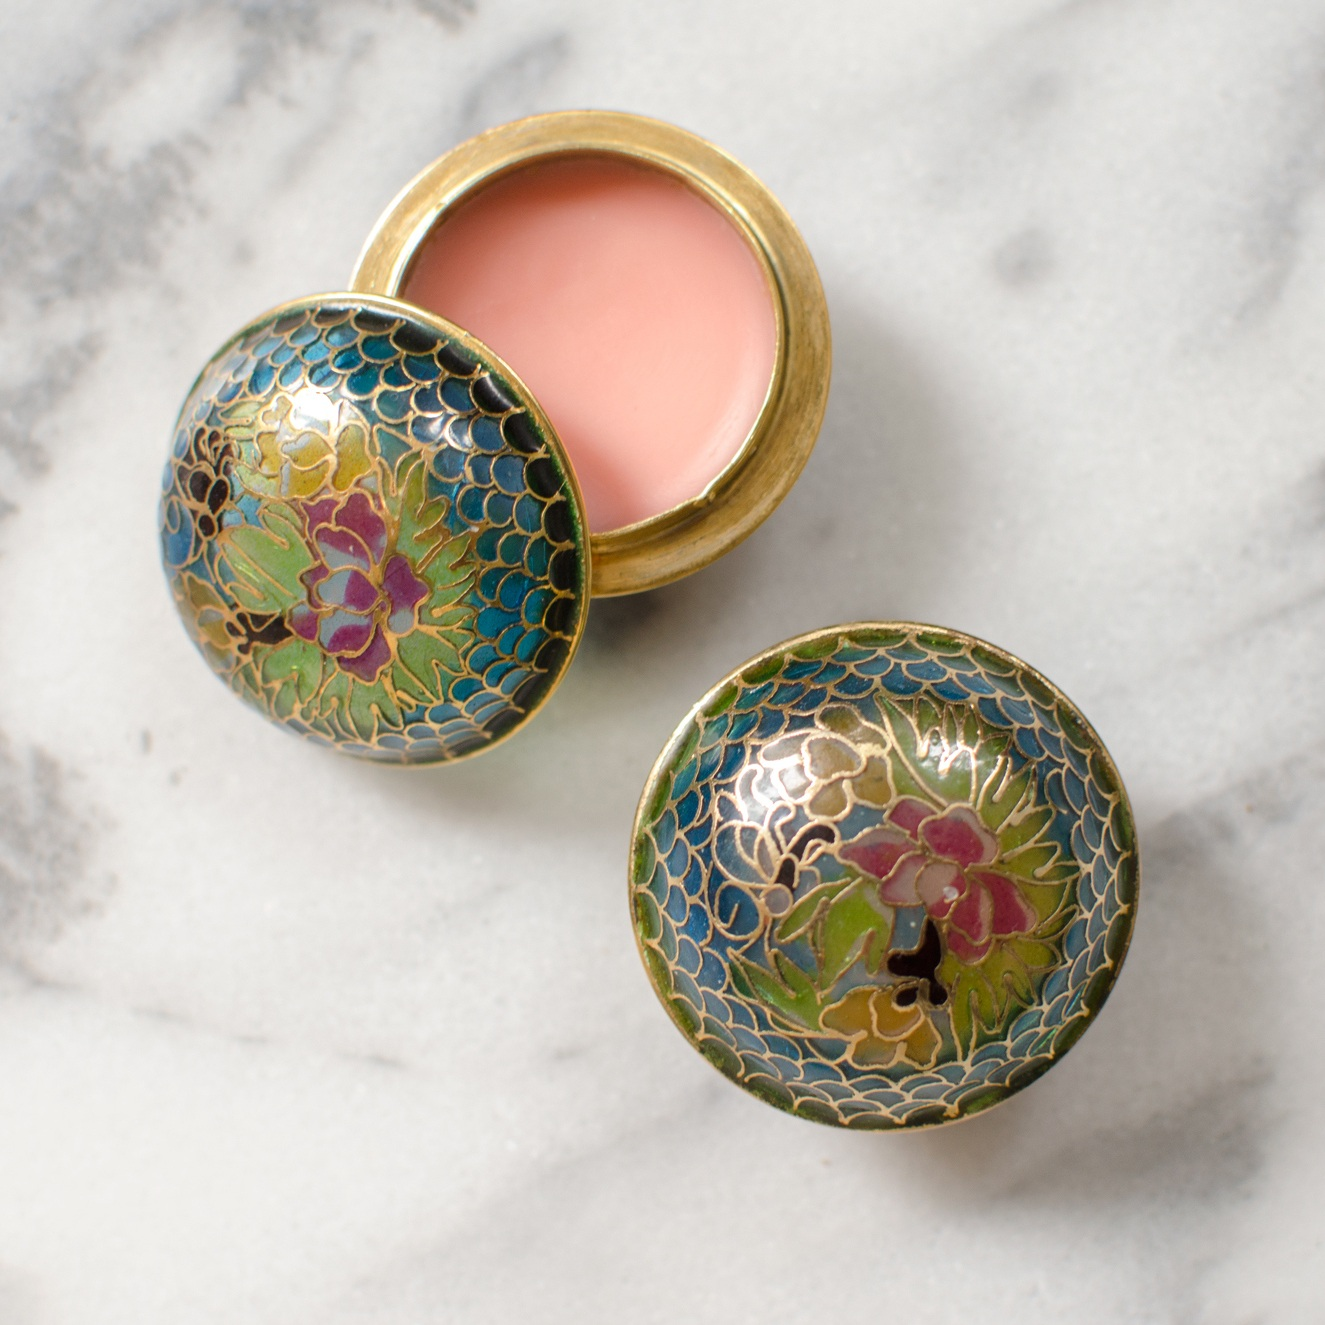 Homemade Lip Balm in Vintage Pillboxes